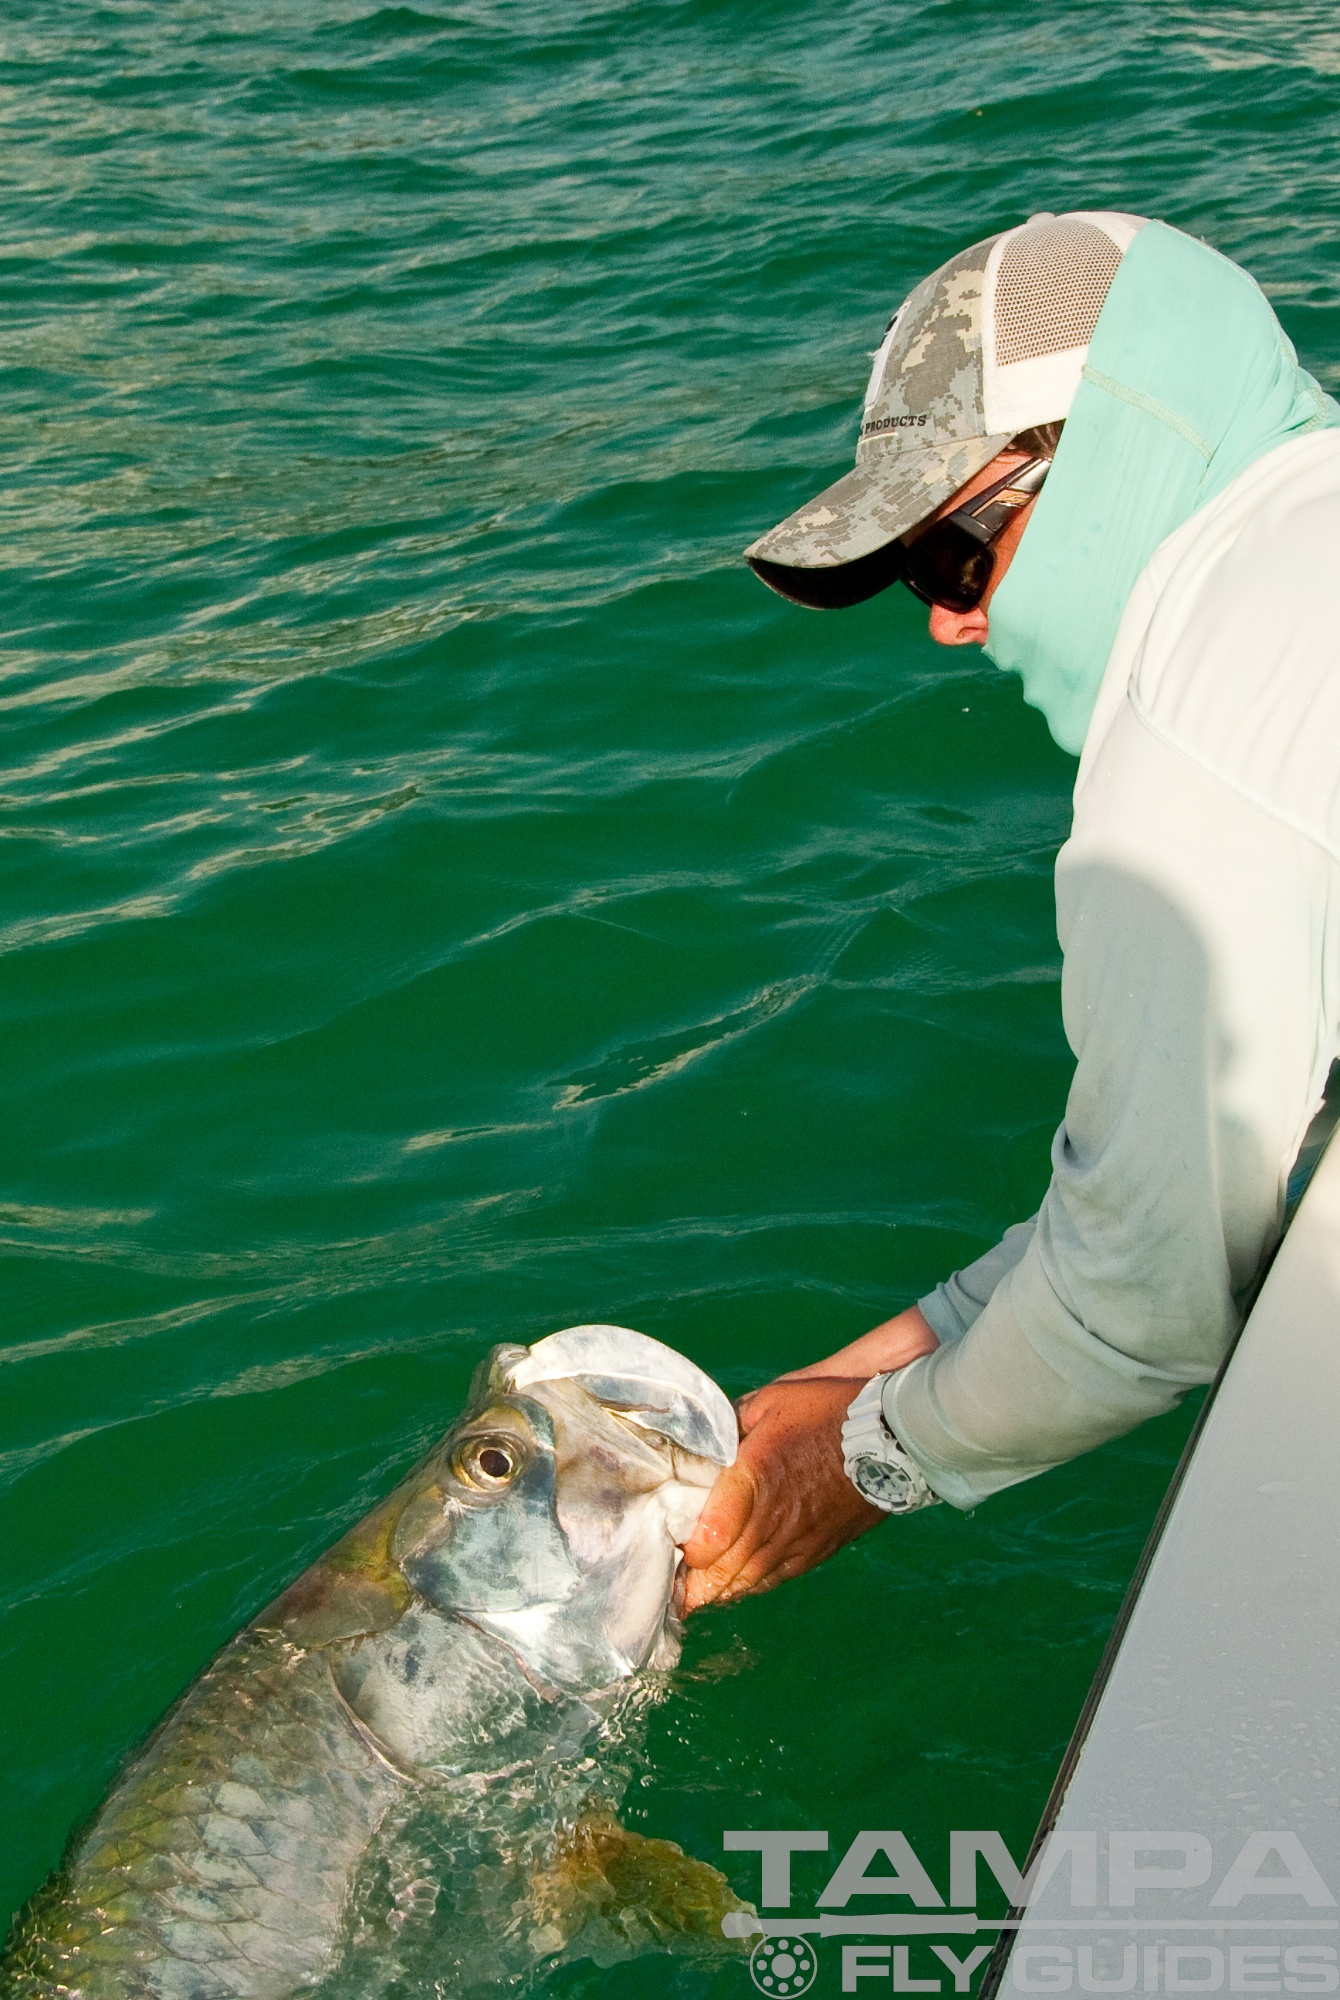 Tampa bay tarpon tampa fly guides for Tampa bay fishing outfitters